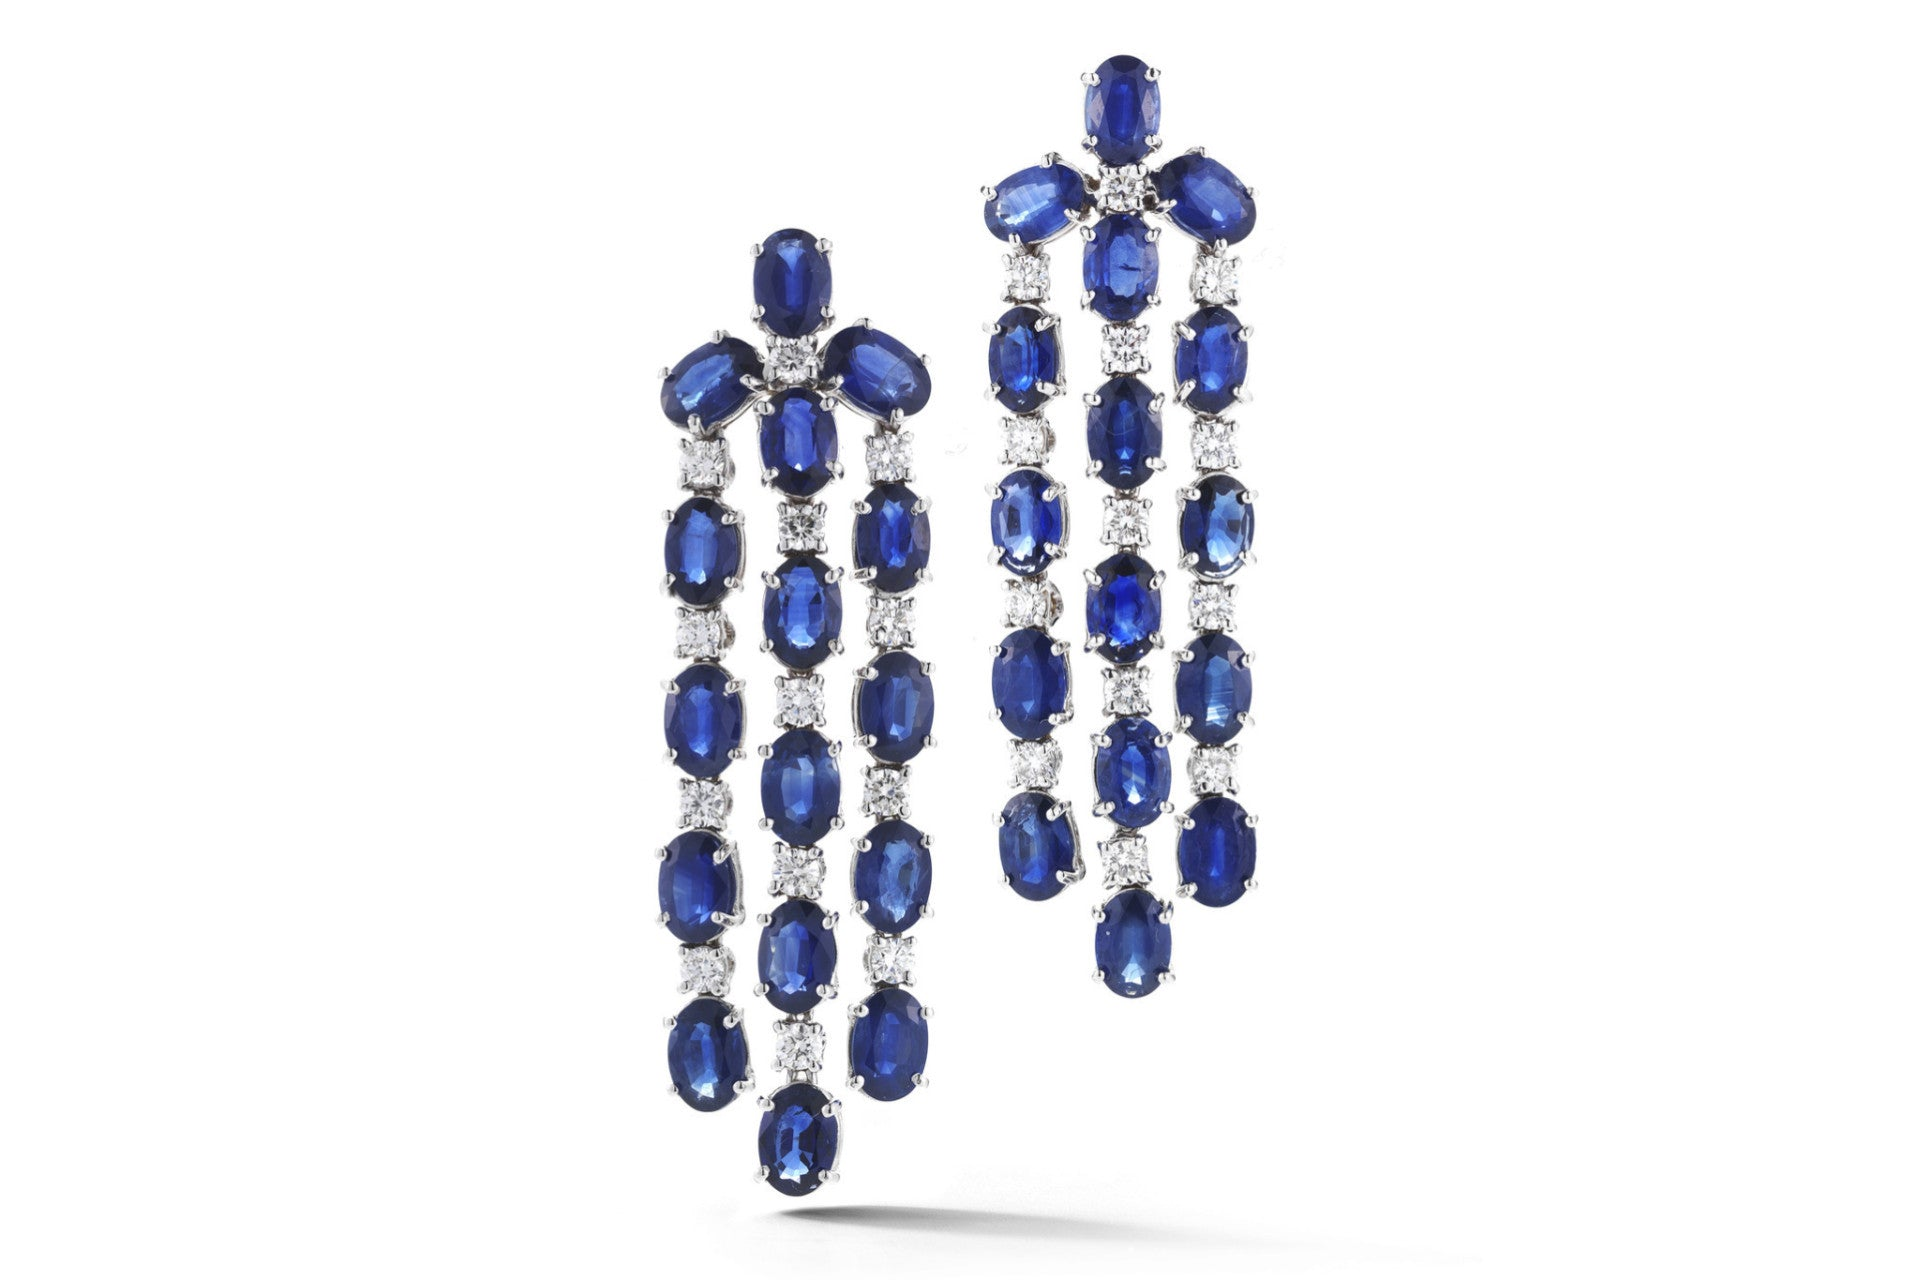 Nightlife chandelier earrings with blue sapphires and diamonds nightlife chandelier earrings with blue sapphires and diamonds 18k white gold aloadofball Images